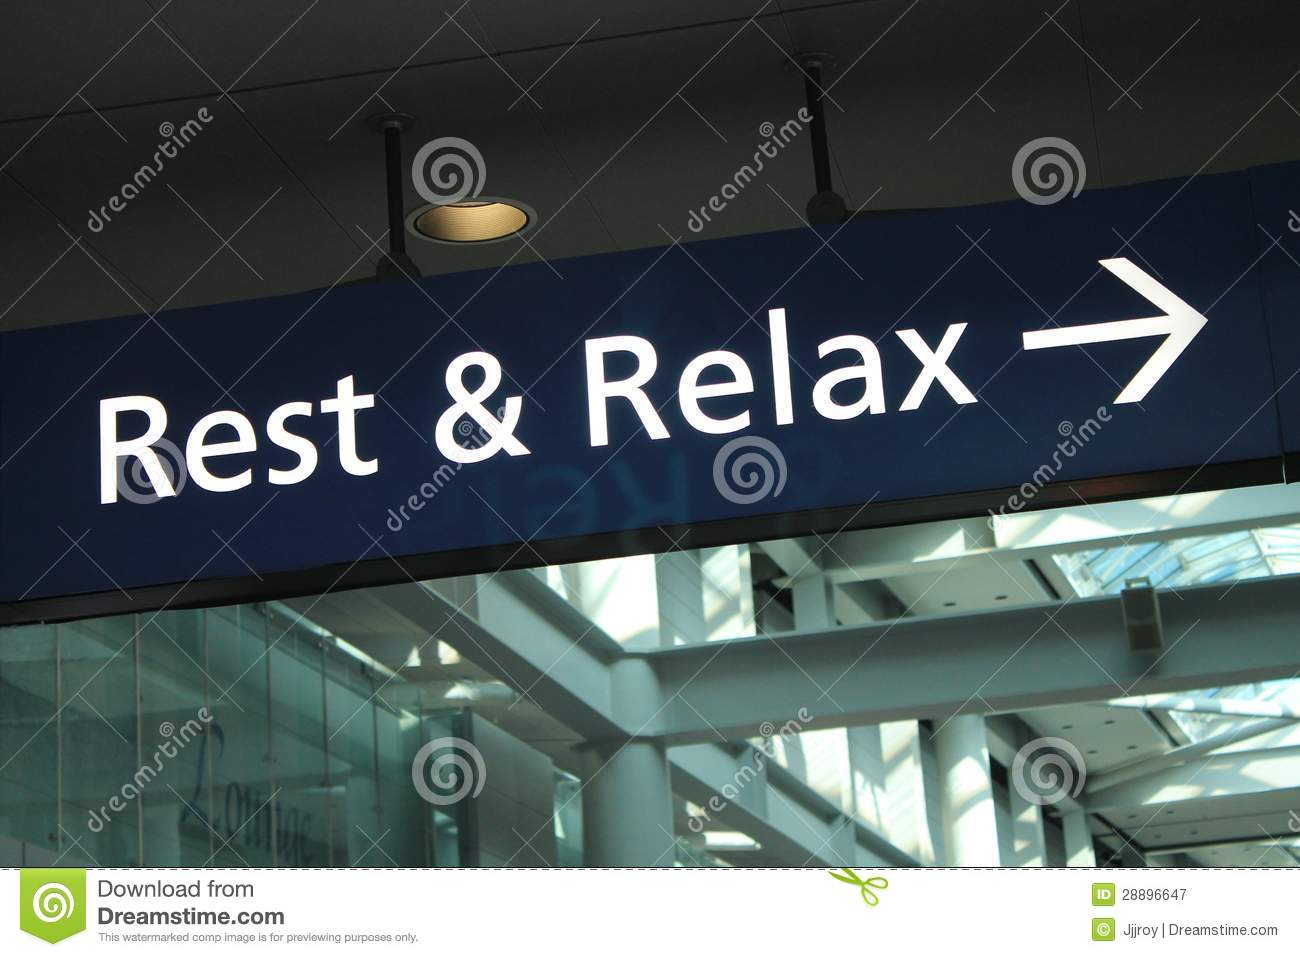 Where to go to rest 74